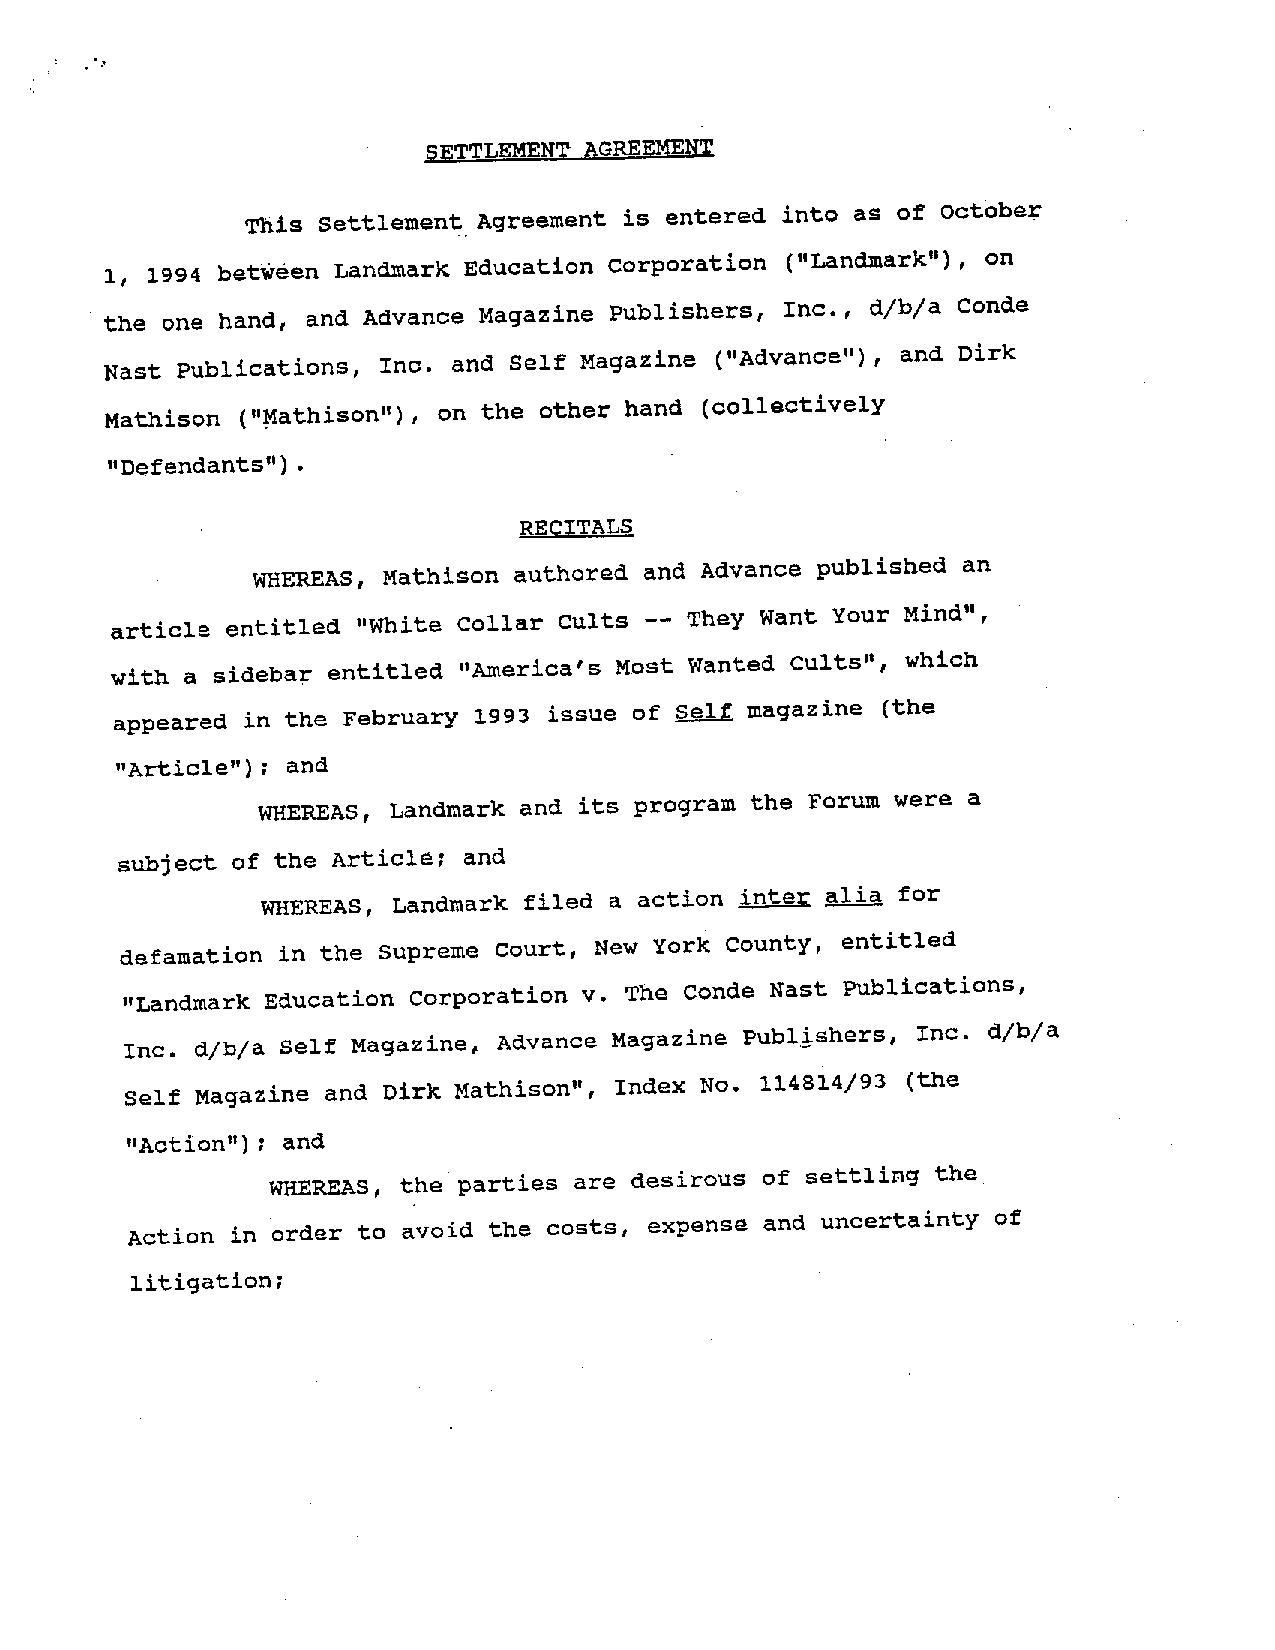 File:1993 Landmark V Conde Nast Settlement Agreement.pdf